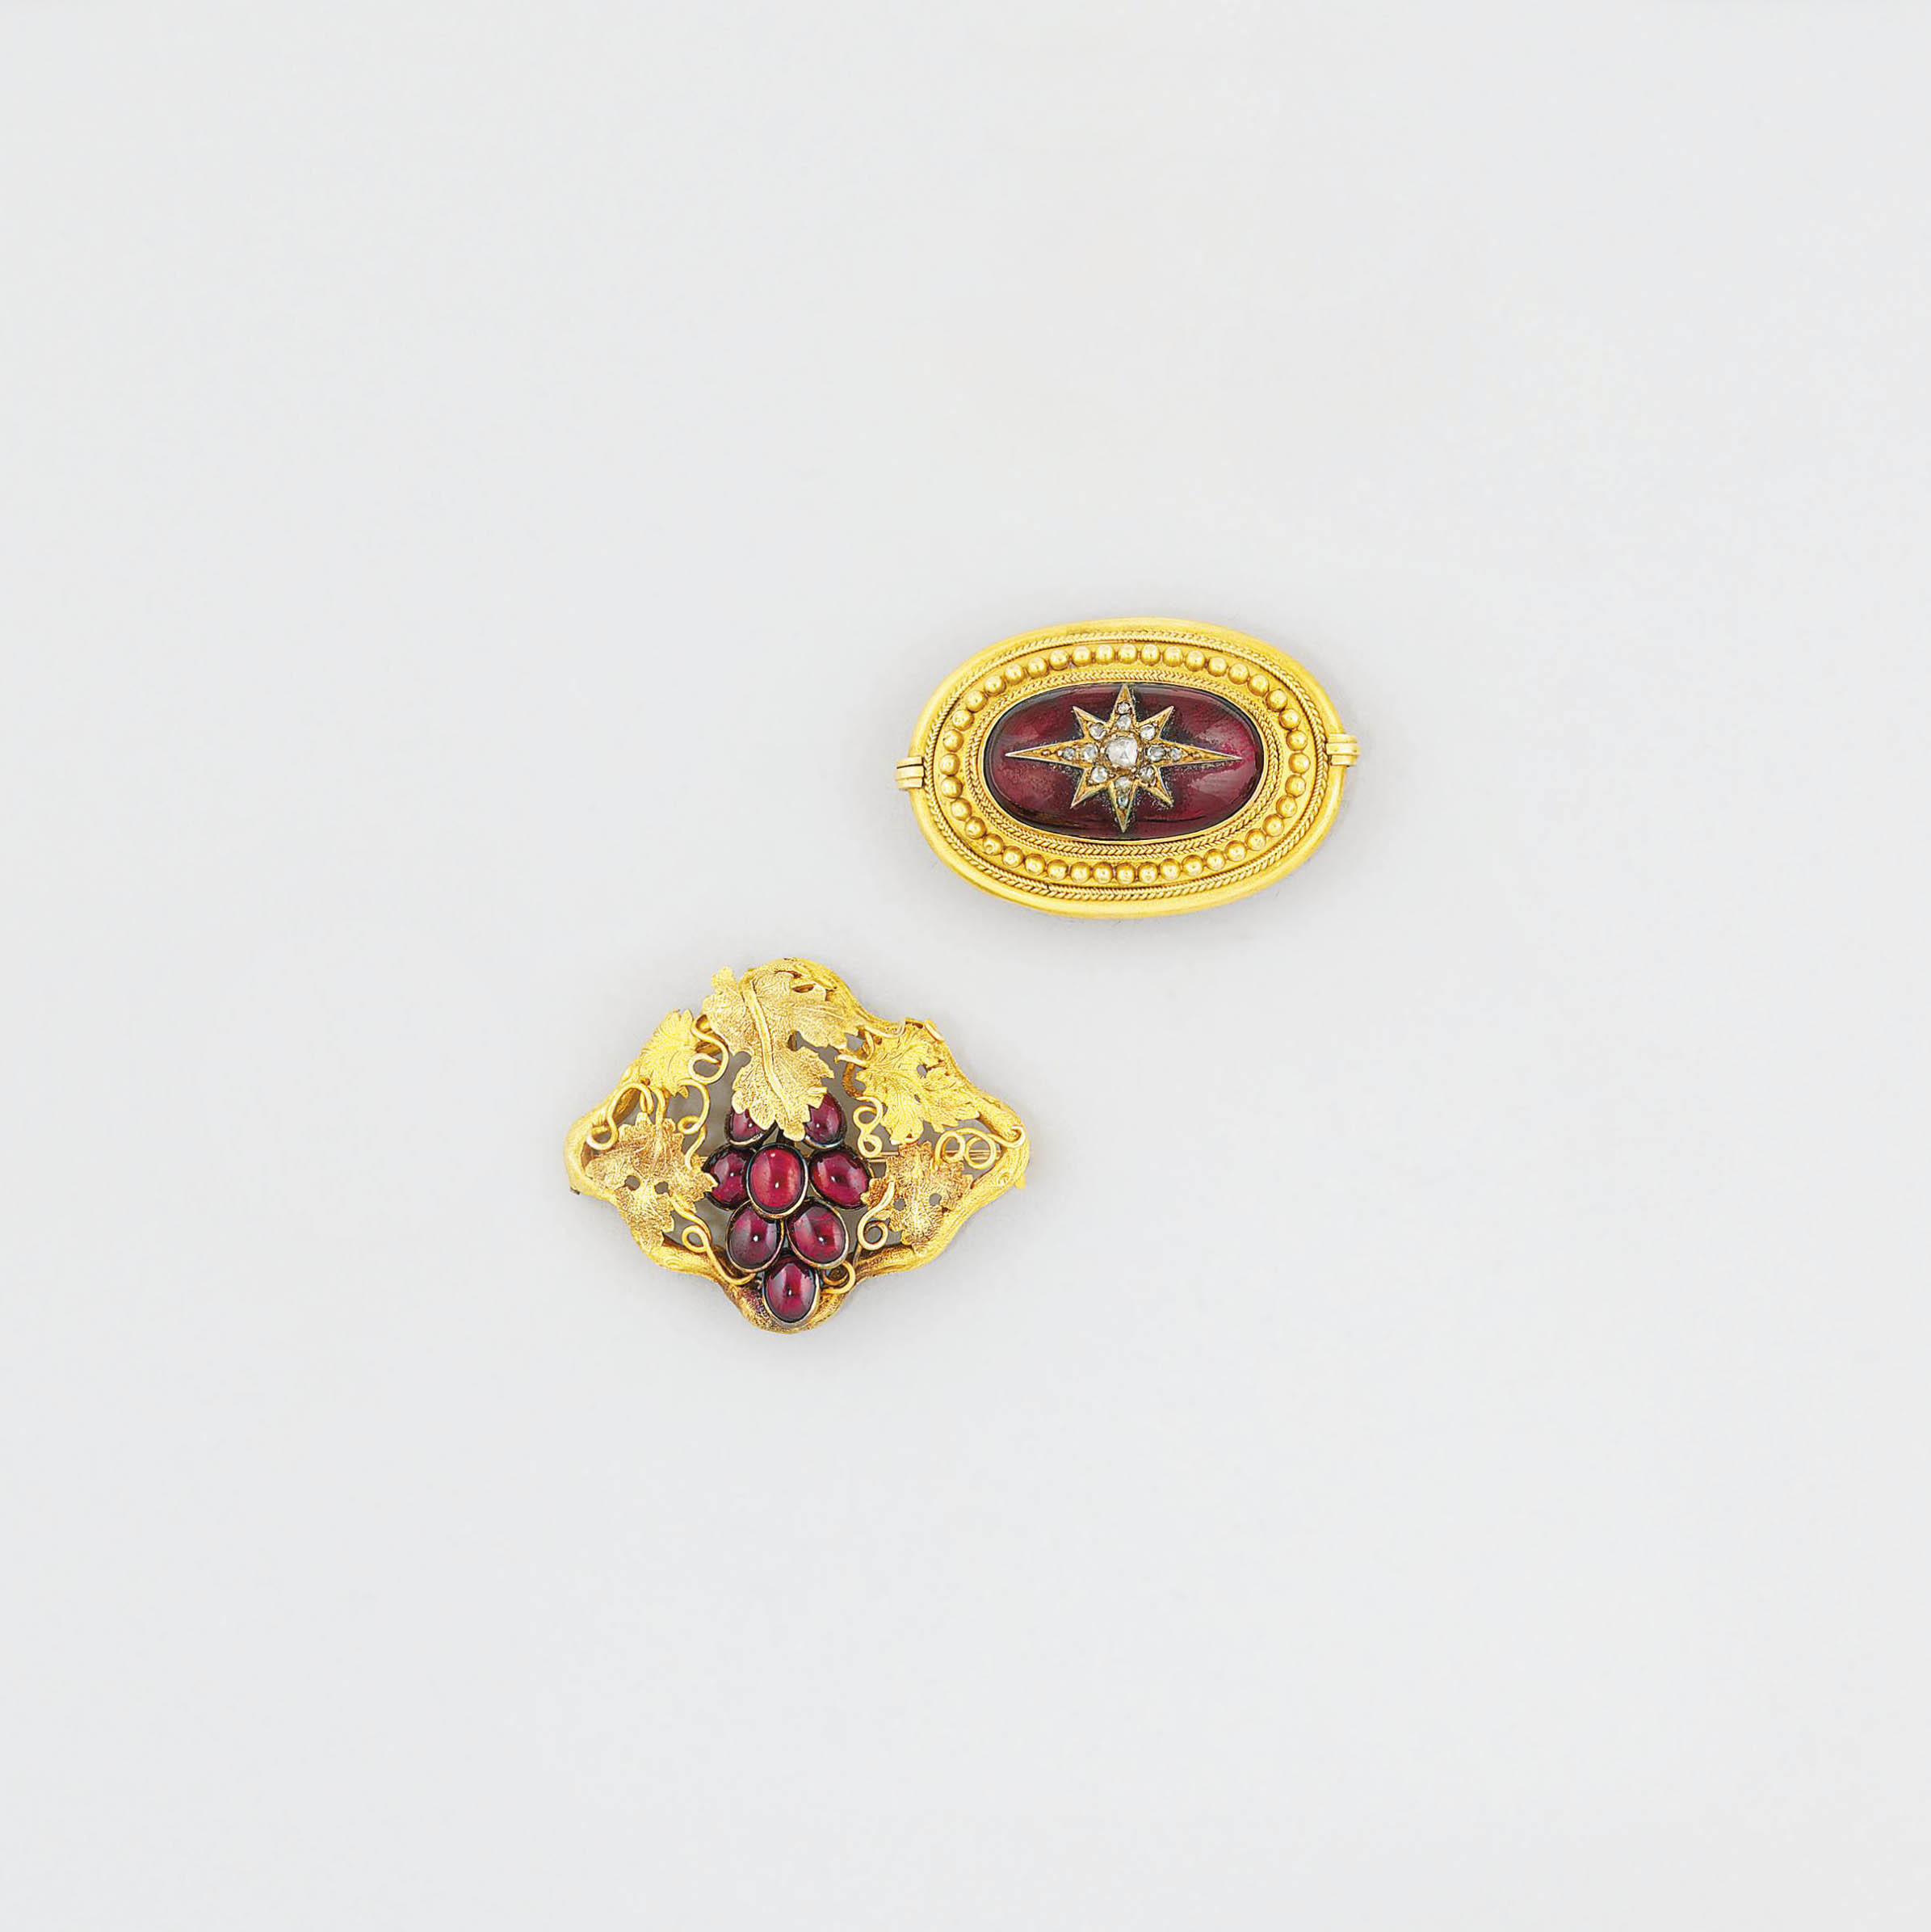 A 19th century garnet-set bang